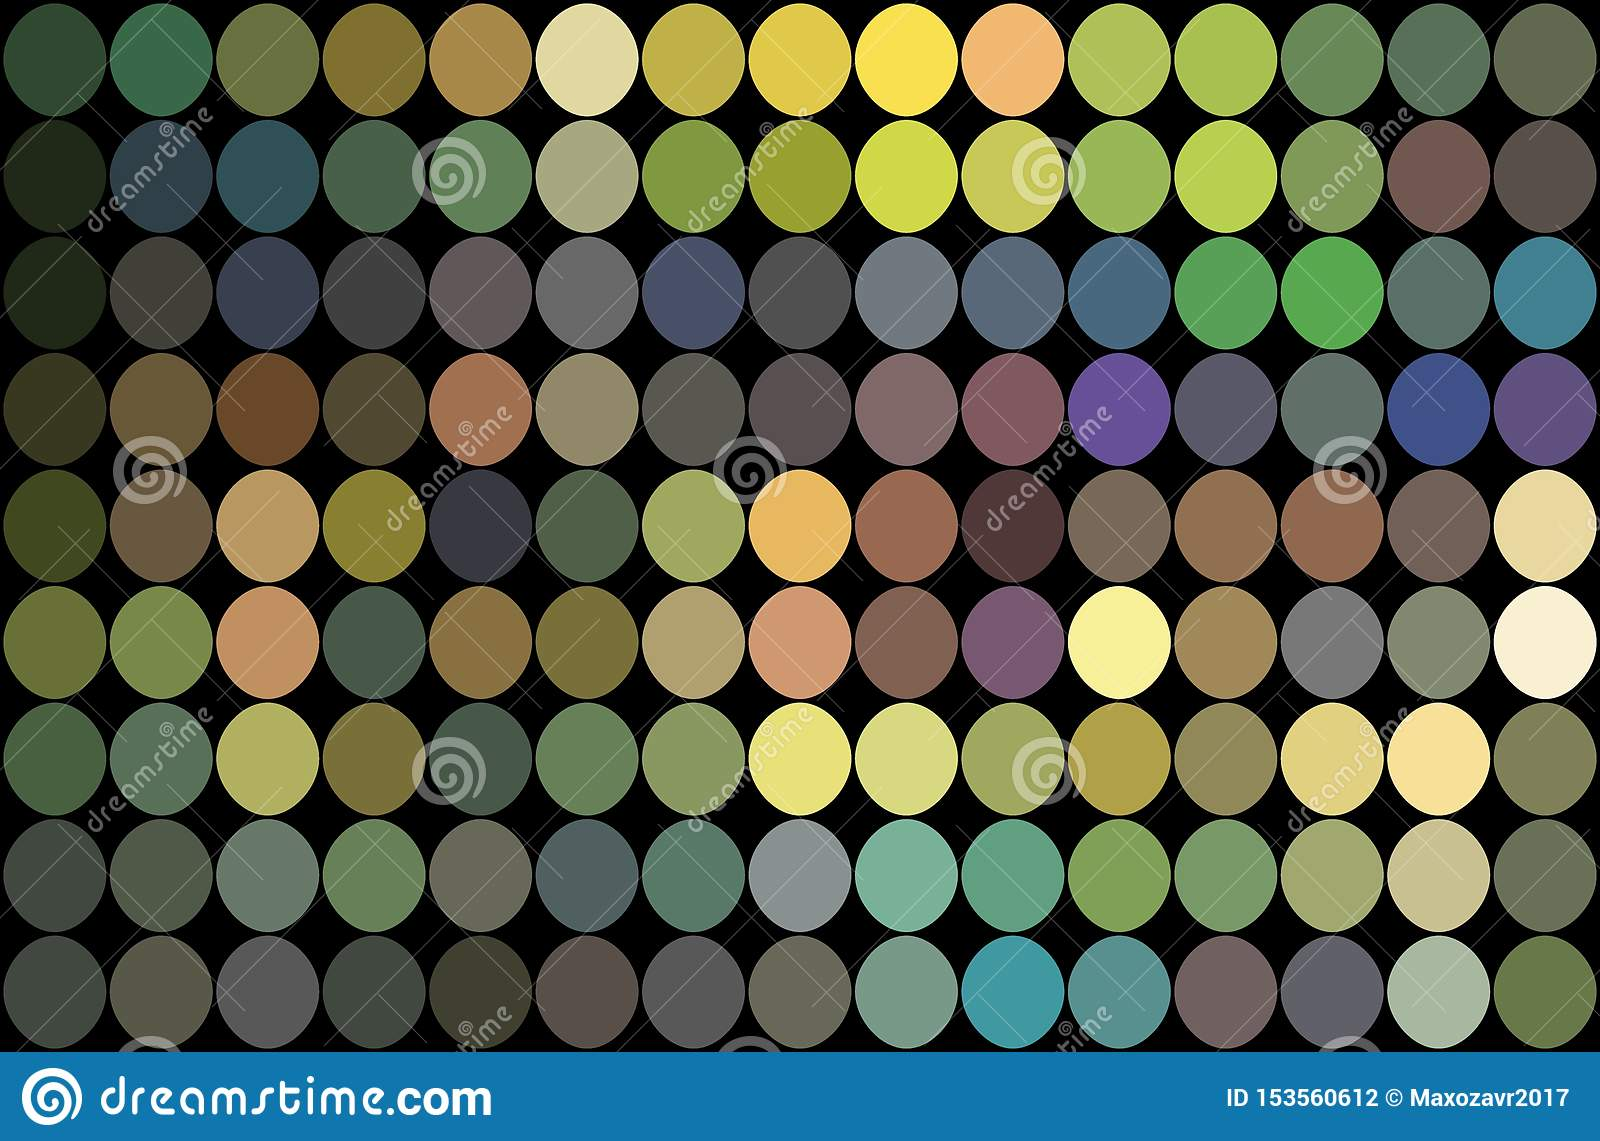 Mosaic green yellow lilac blue dots background. Shimmer holographic illustration.